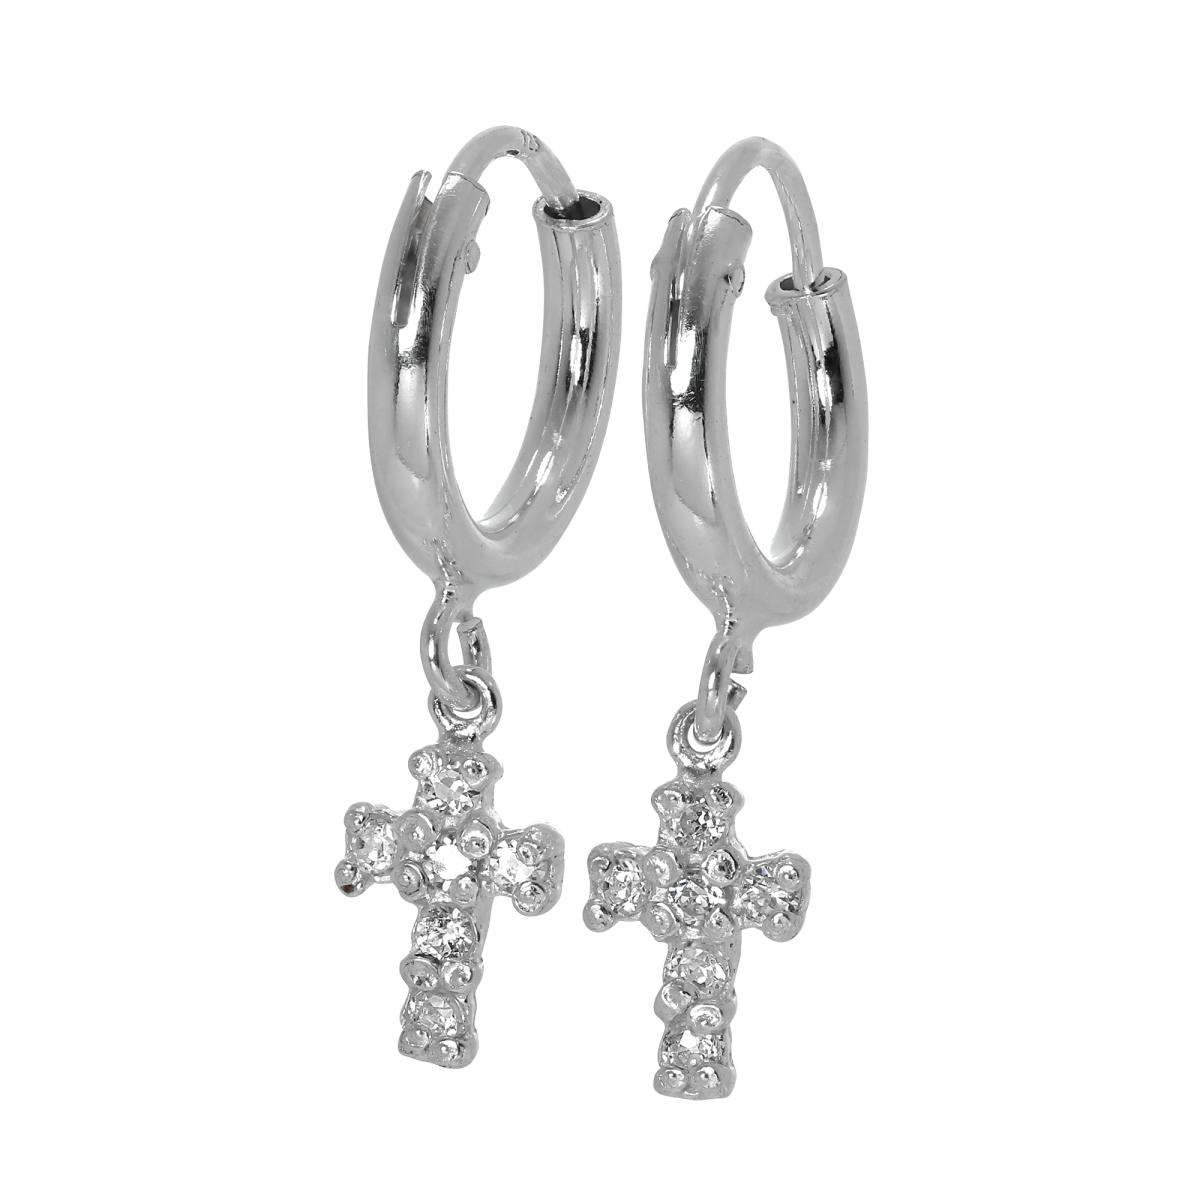 Alterative image for Sterling Silver Sleeper Hoop Earrings with CZ Crystal Encrusted Cross